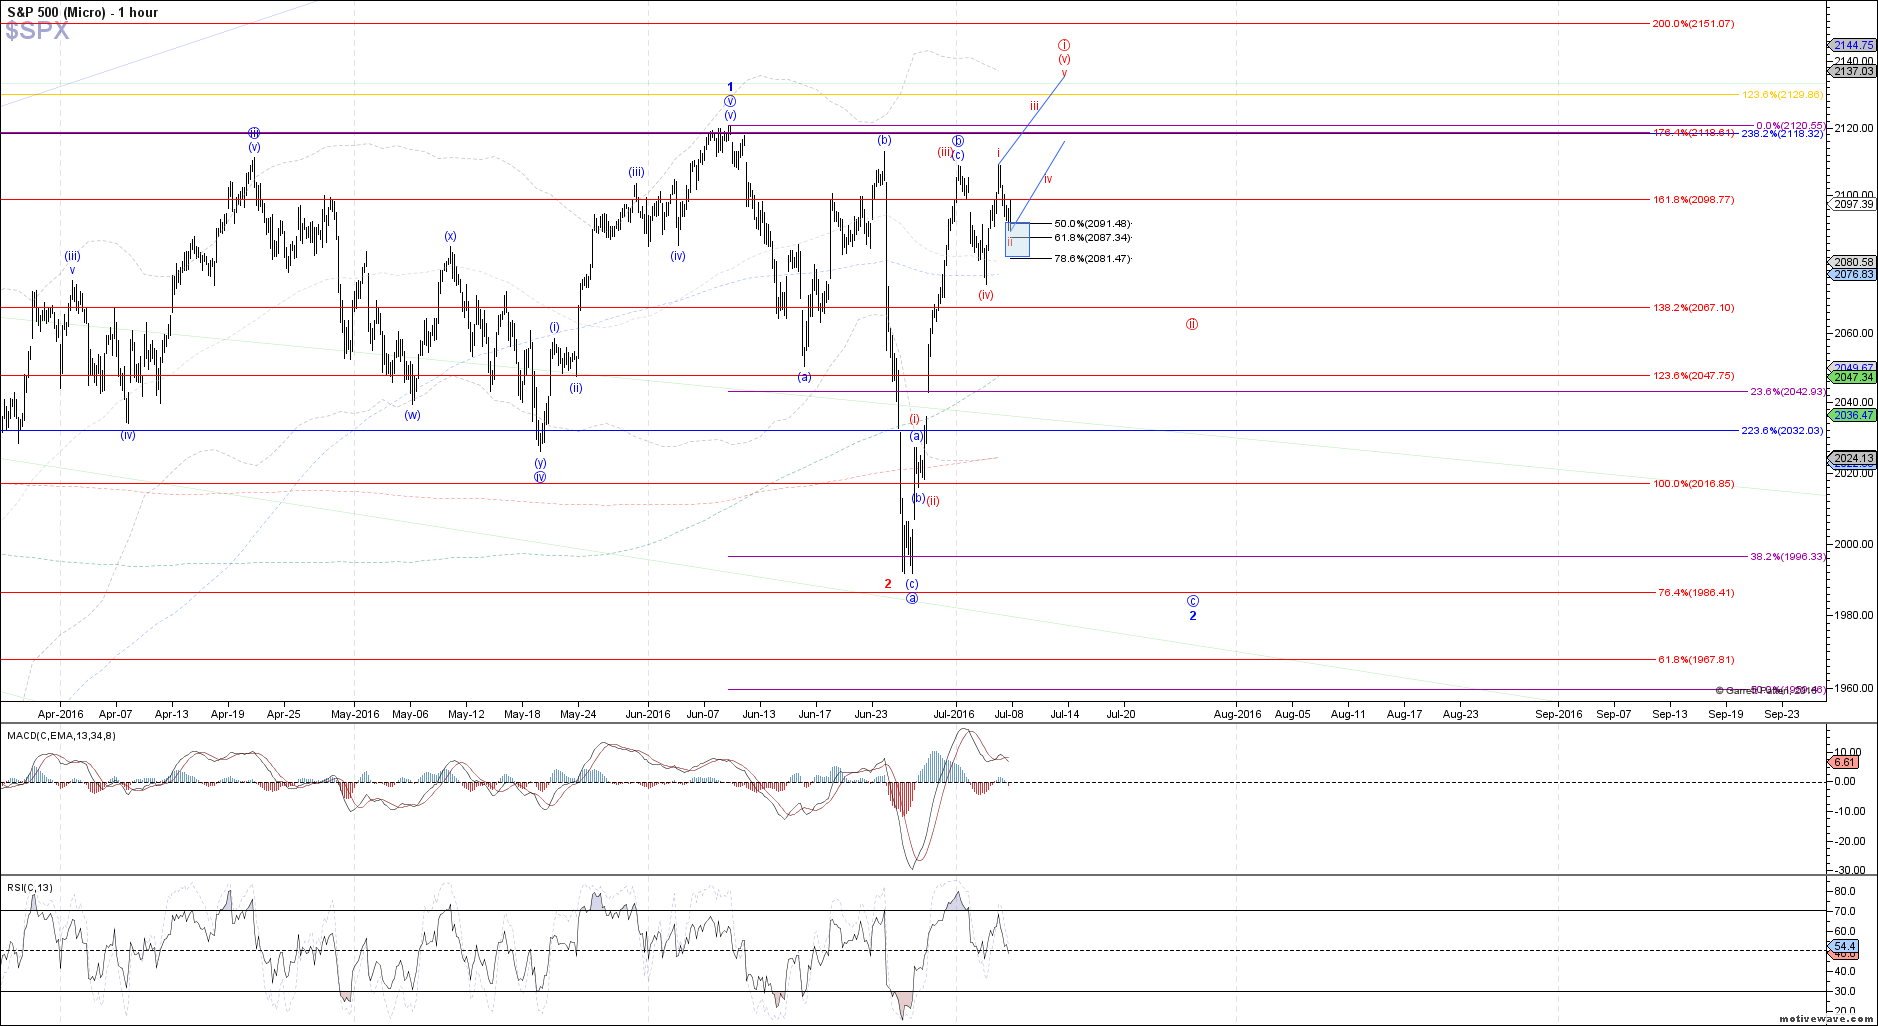 $SPX - Micro - Jul-07 1354 PM (1 hour)